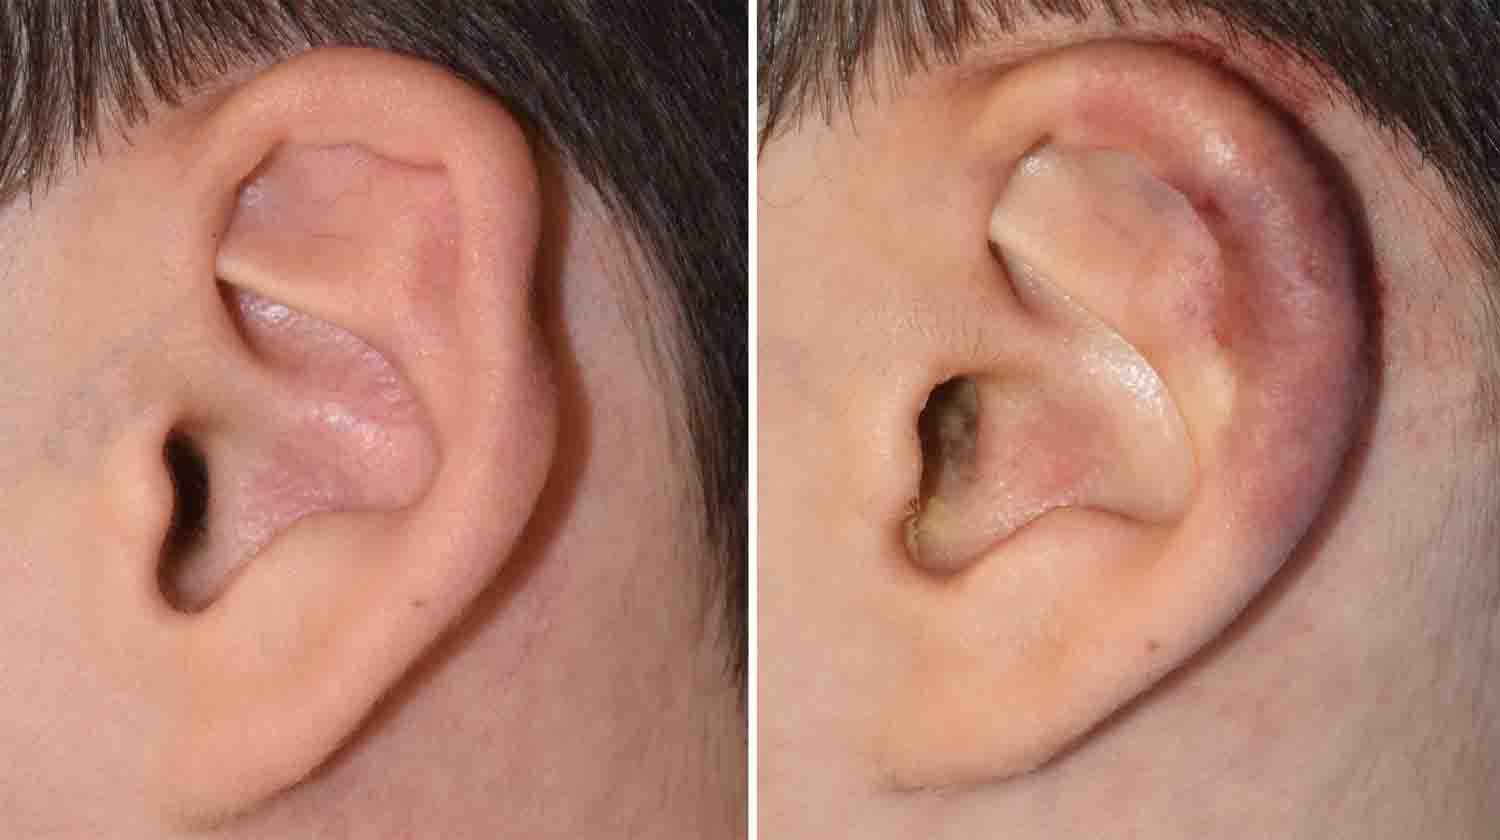 explore plastic surgery dr barry eppley plastic surgeon his immediate intraoperative result showed improvement in the shape of ear through recreation of a more defined outer helical rim while many techniques for